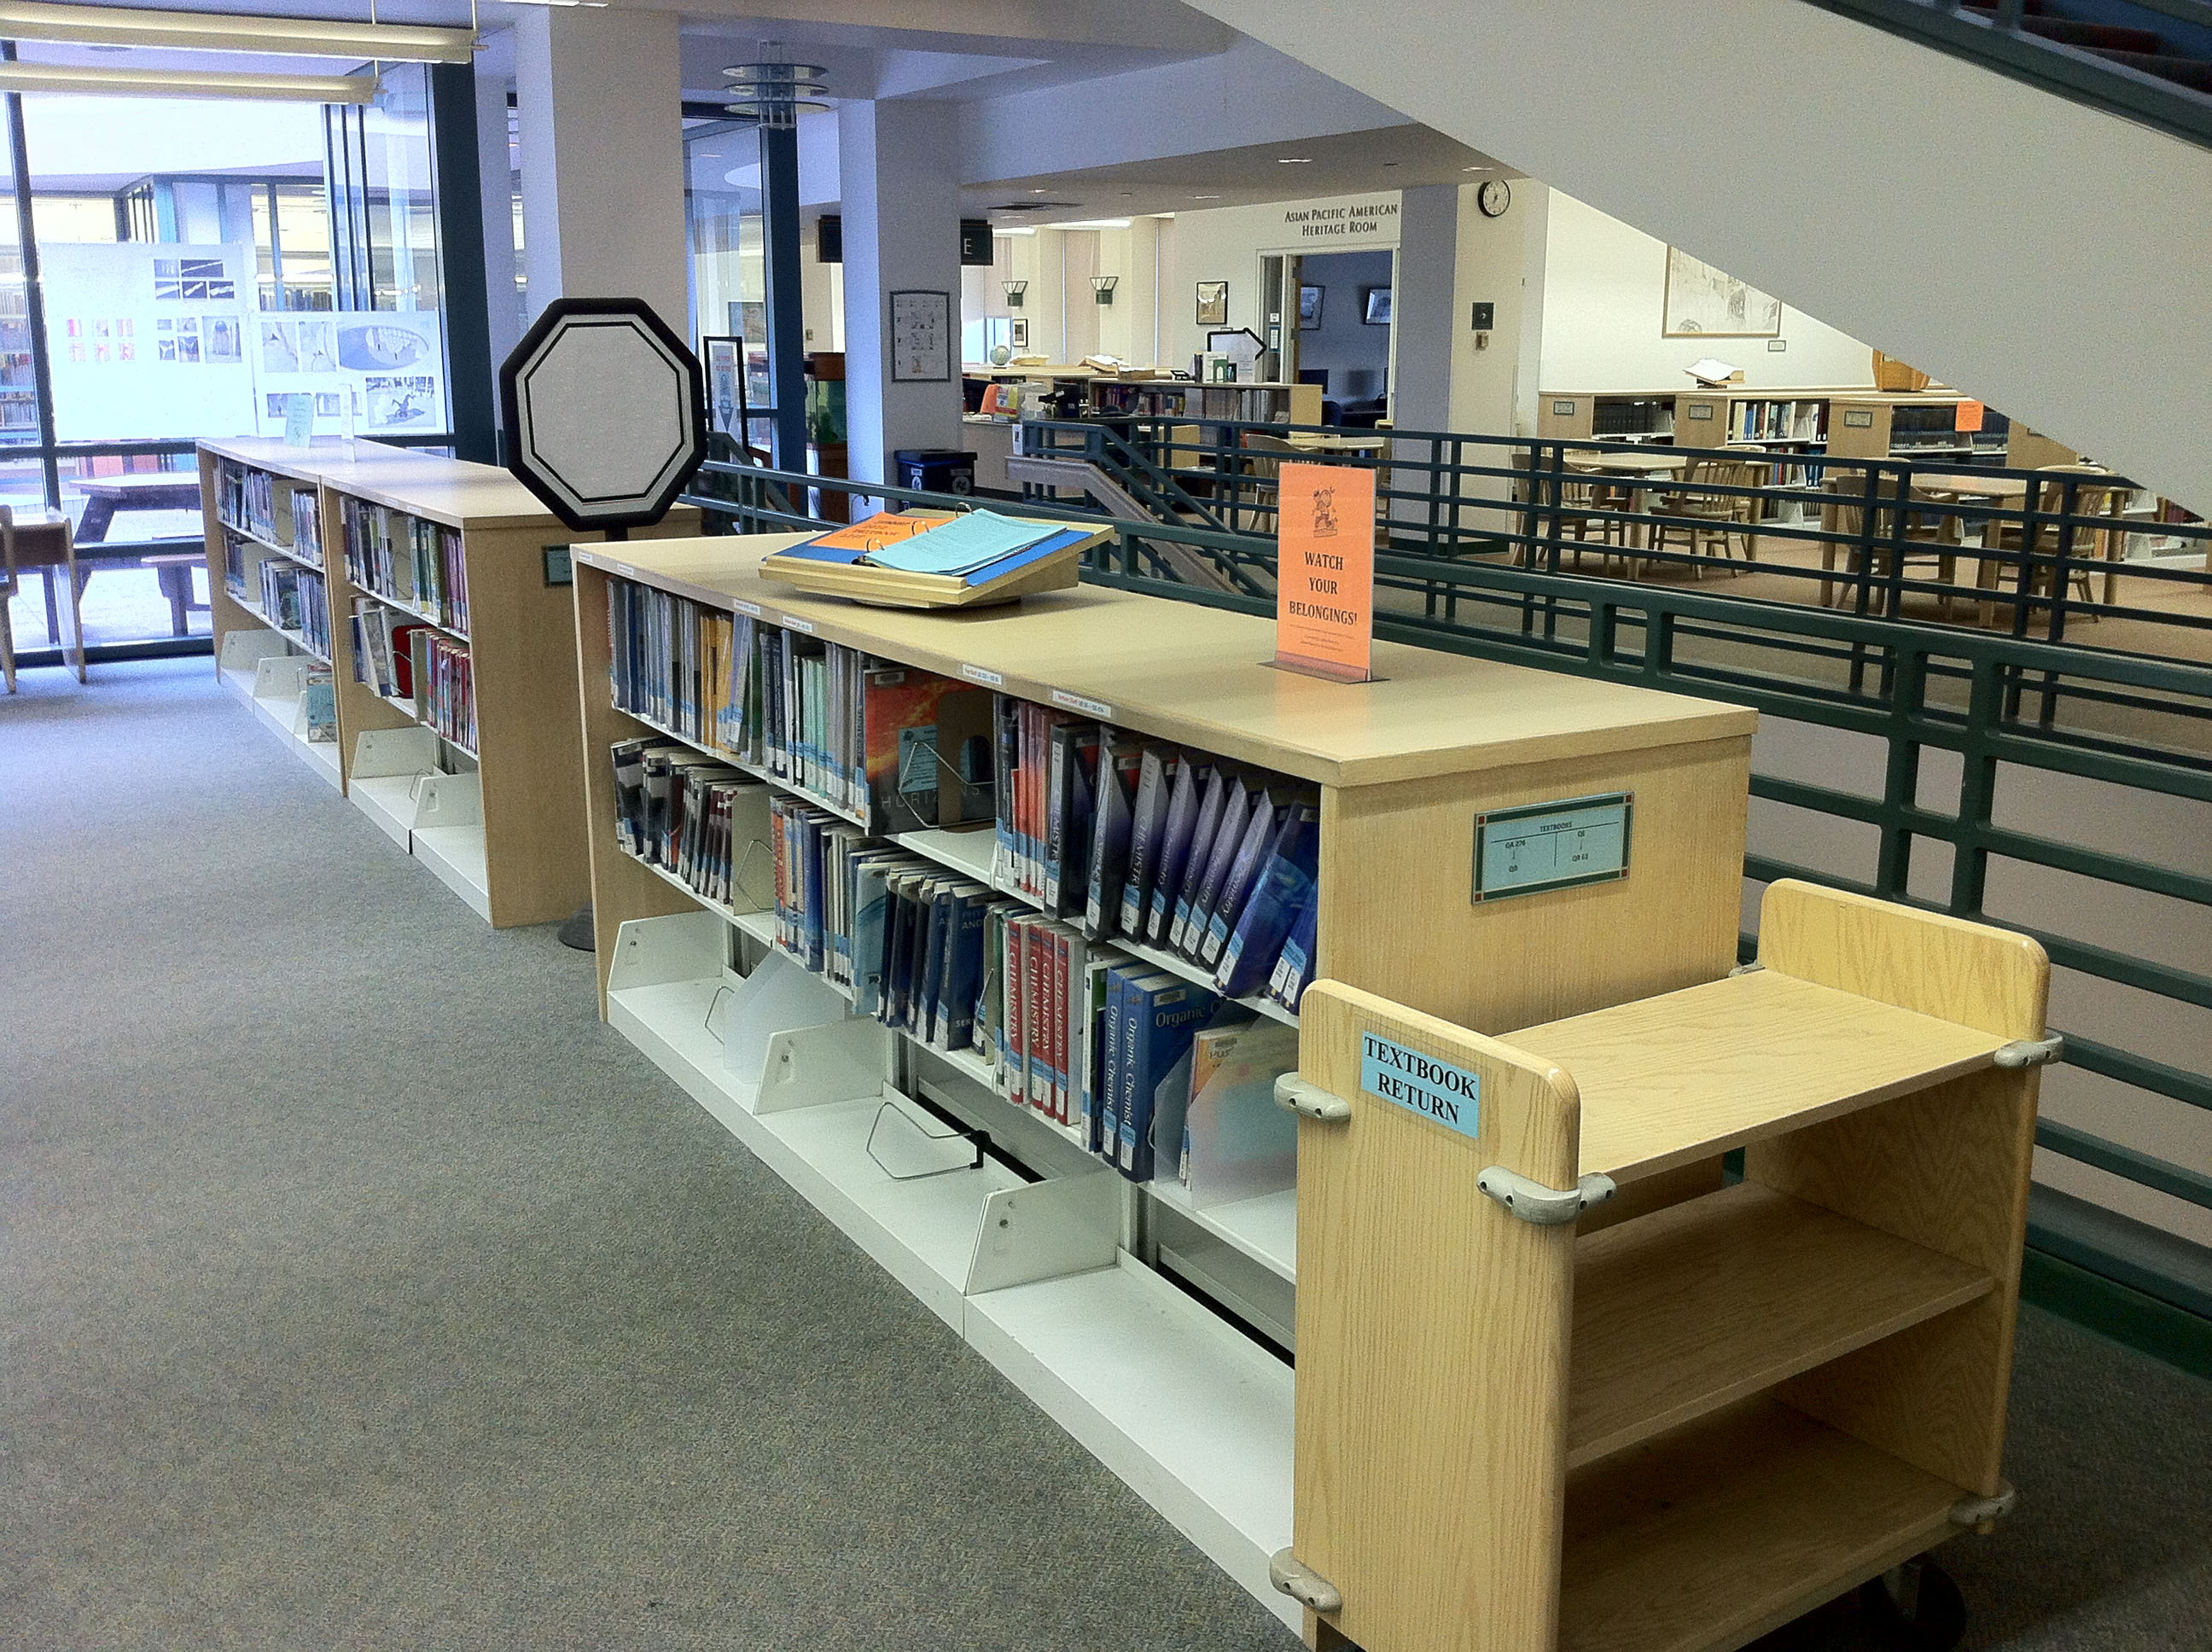 The Textbooks area inside the PCC Library